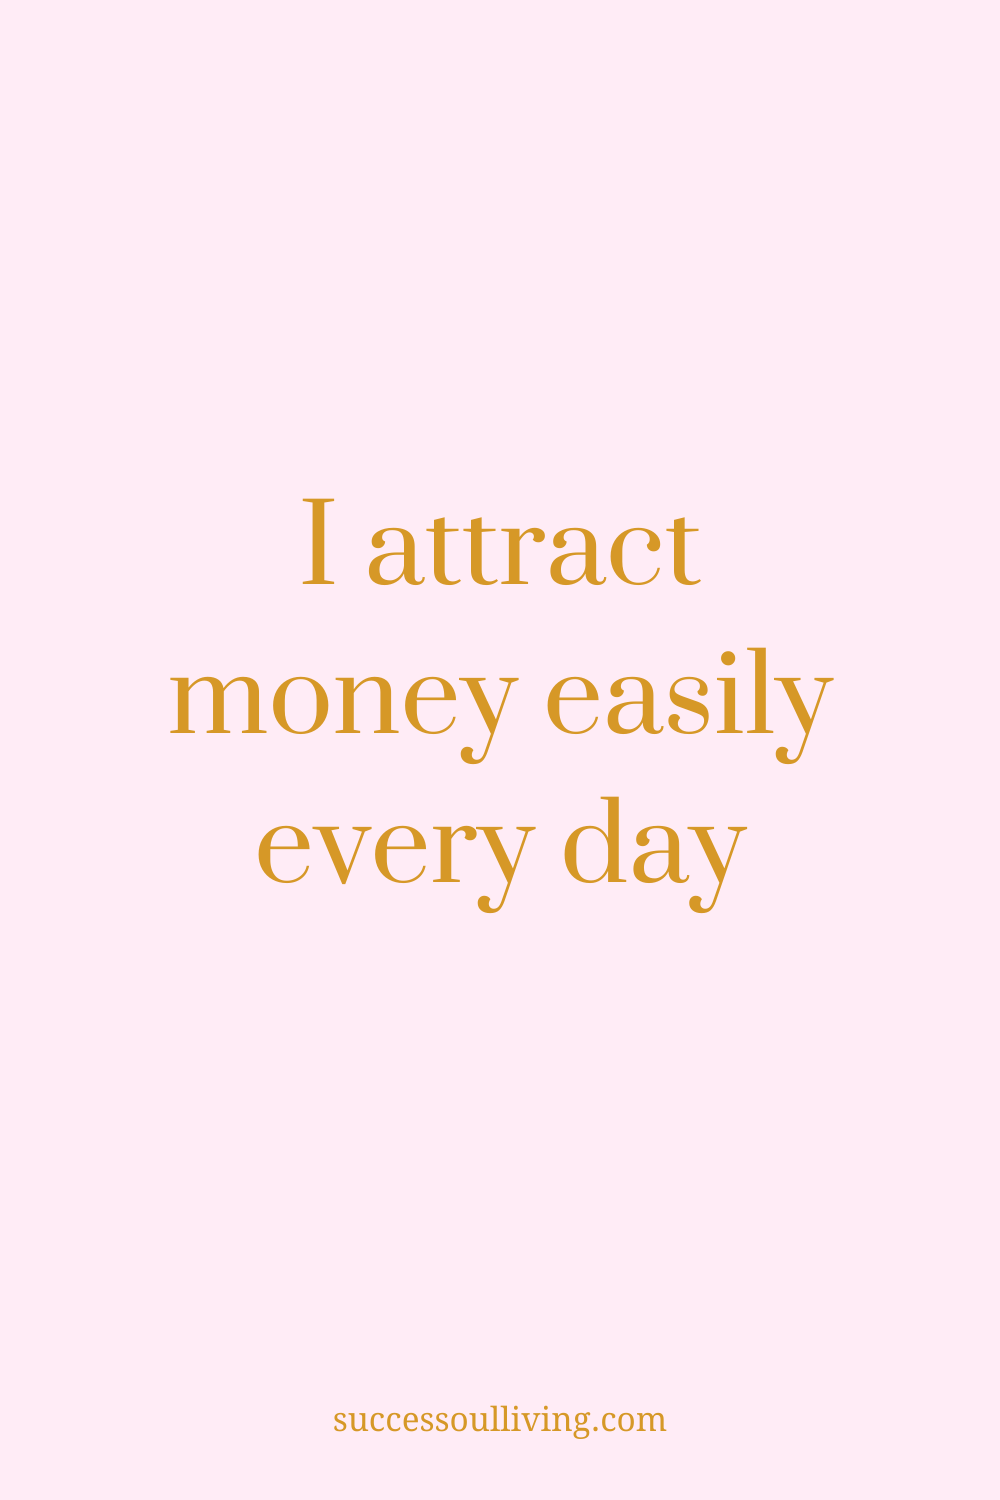 A Daily Affirmation To Create Wealth   Success-soul® Living